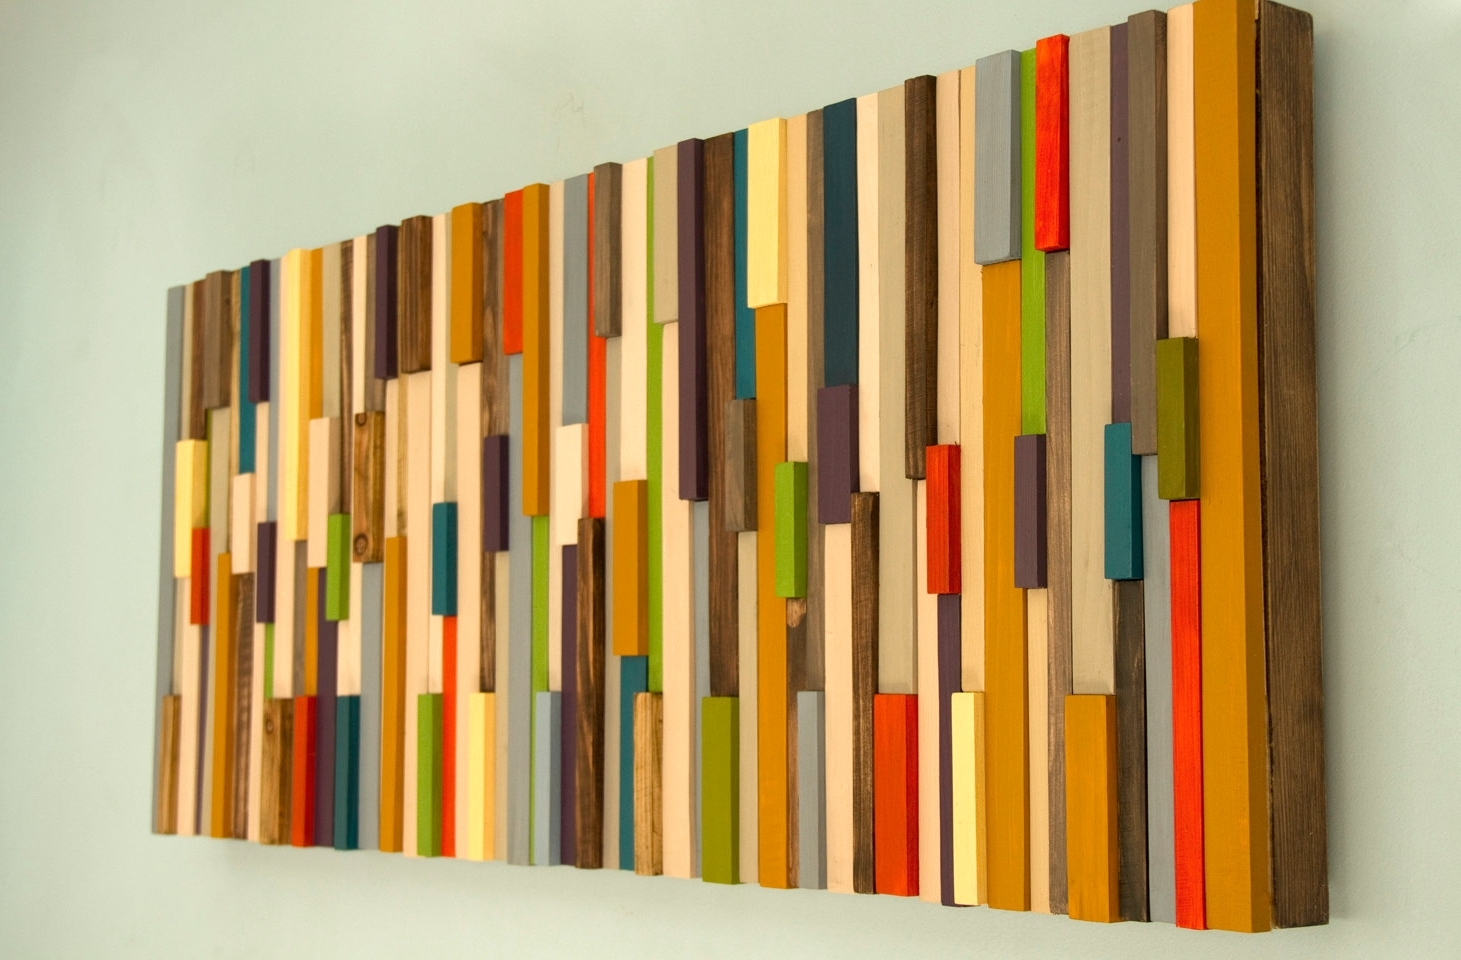 Modern Large Wall Art, Reclaimed Wood Art Sculpture, Painted Wood Within 2017 Wood Art Wall (View 15 of 20)